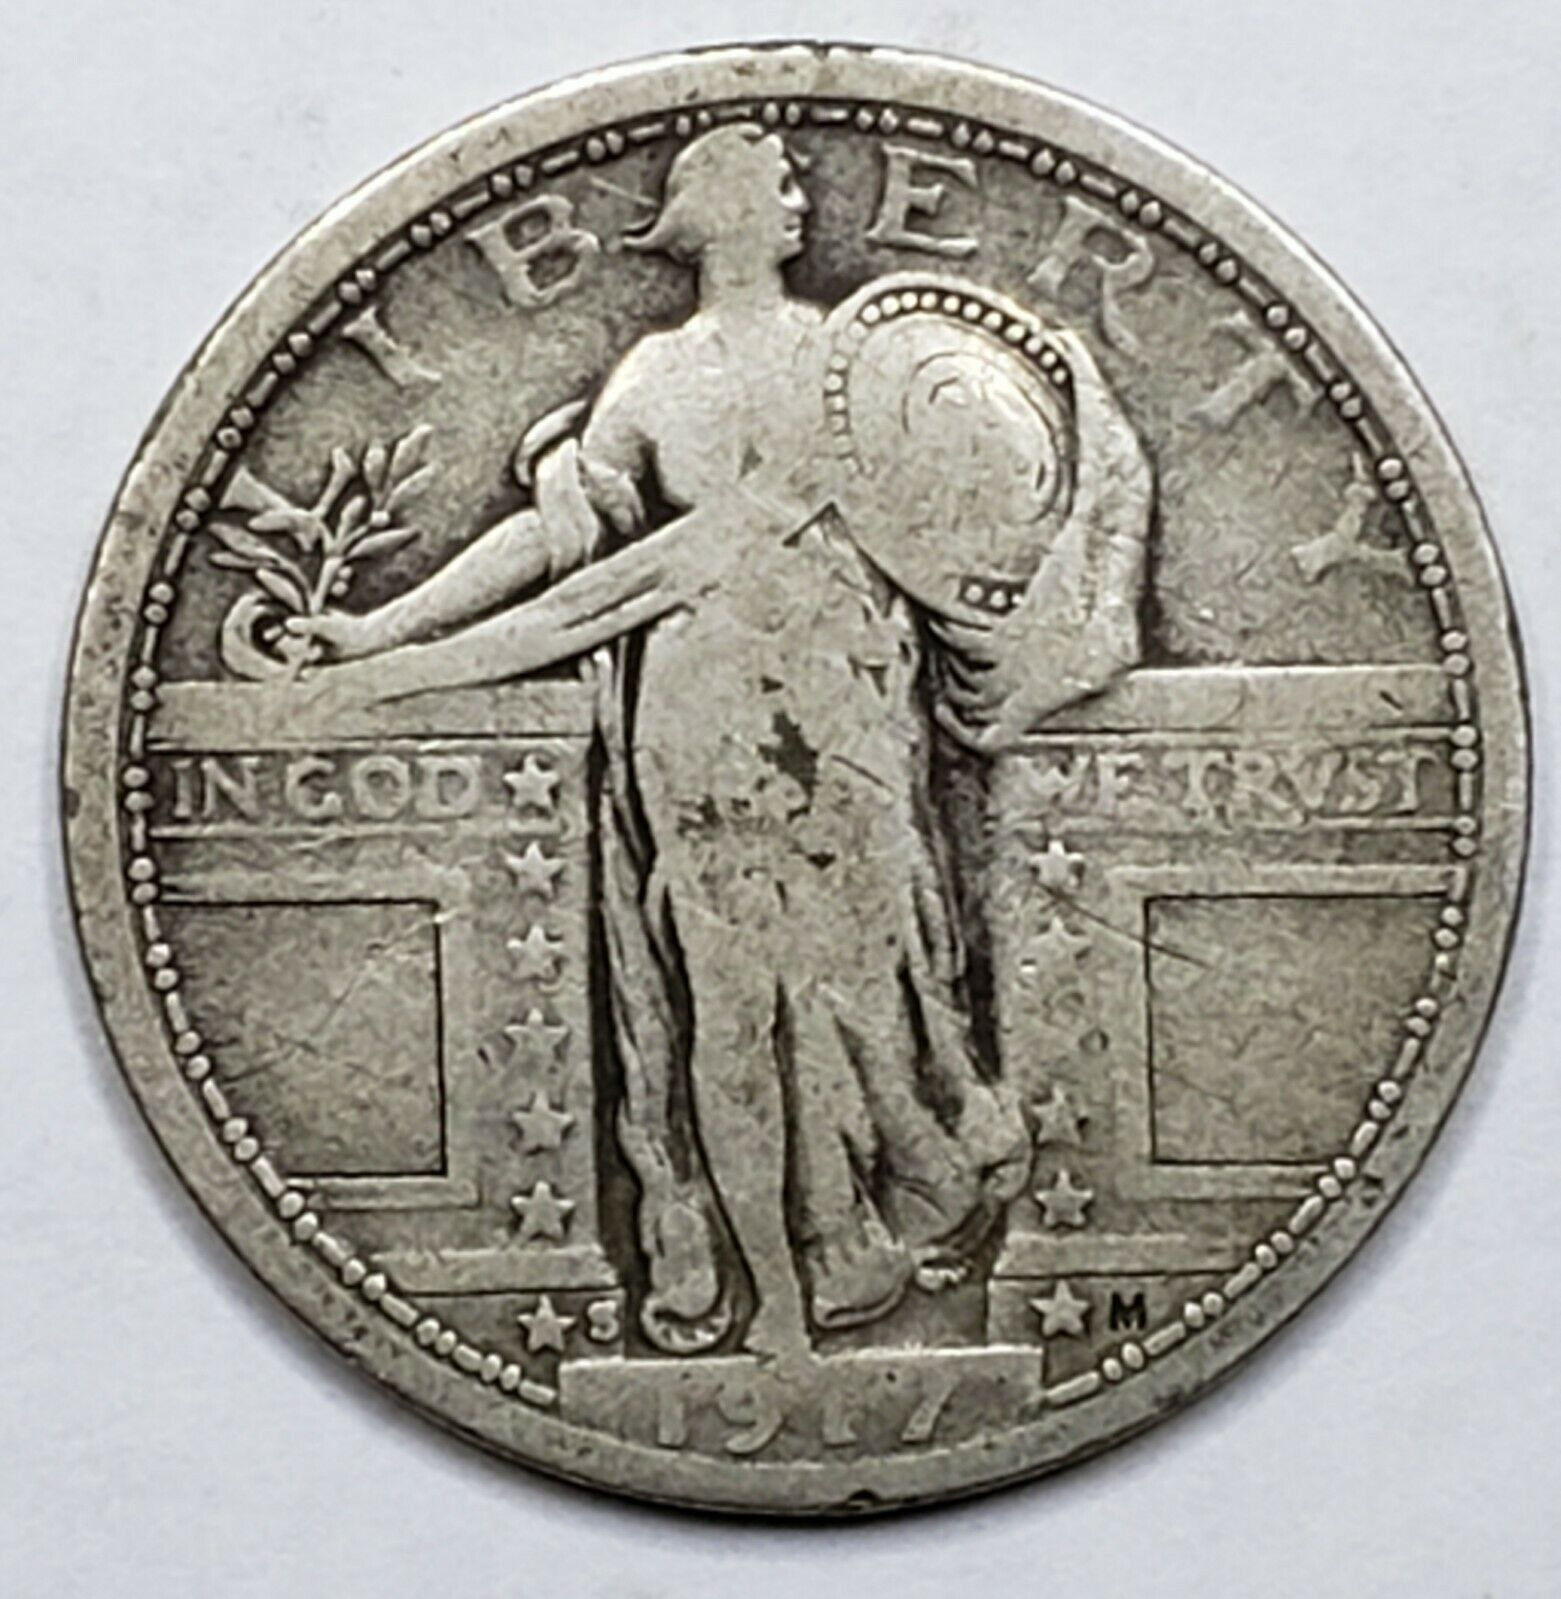 1917S Standing Liberty Silver Quarter Coin Type 1 Lot 519-67